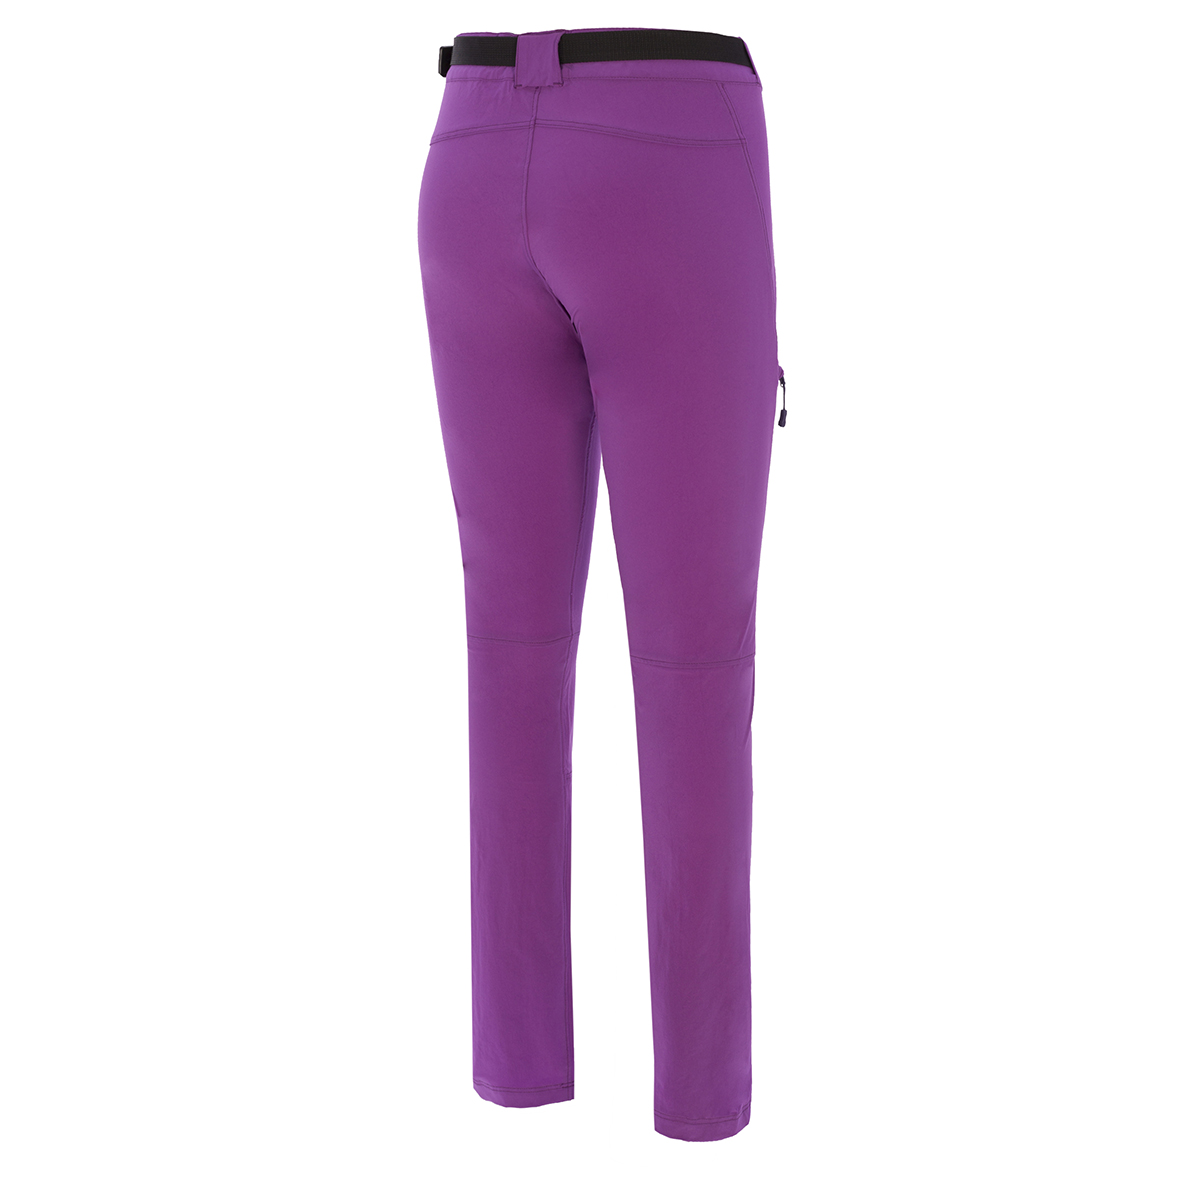 WOMAN'S FORATA MOUNT STRETCH PANT PURPLE